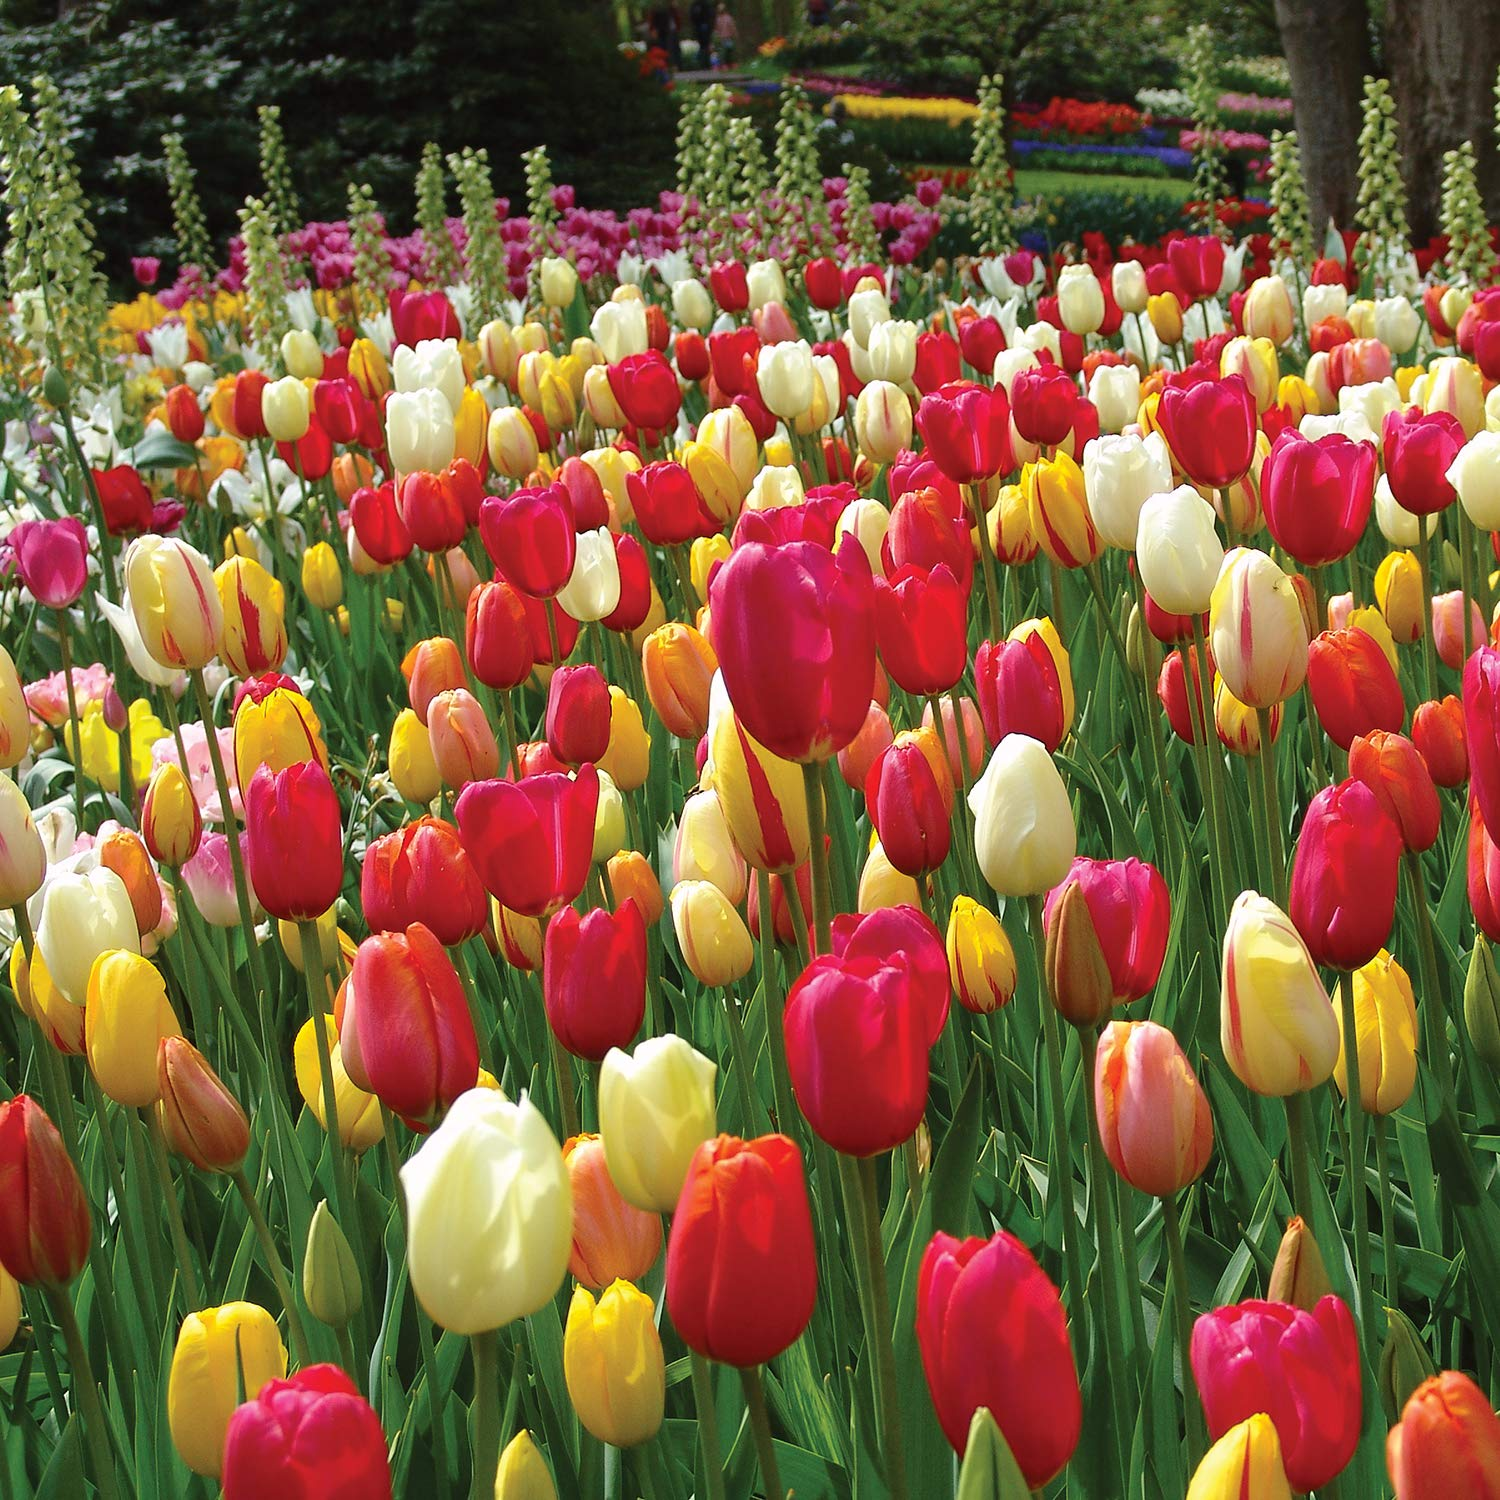 Burpee Single Late Tulip Mix   10 Large Flowering Fall Bulbs for Planting, Multiple Colors by Burpee